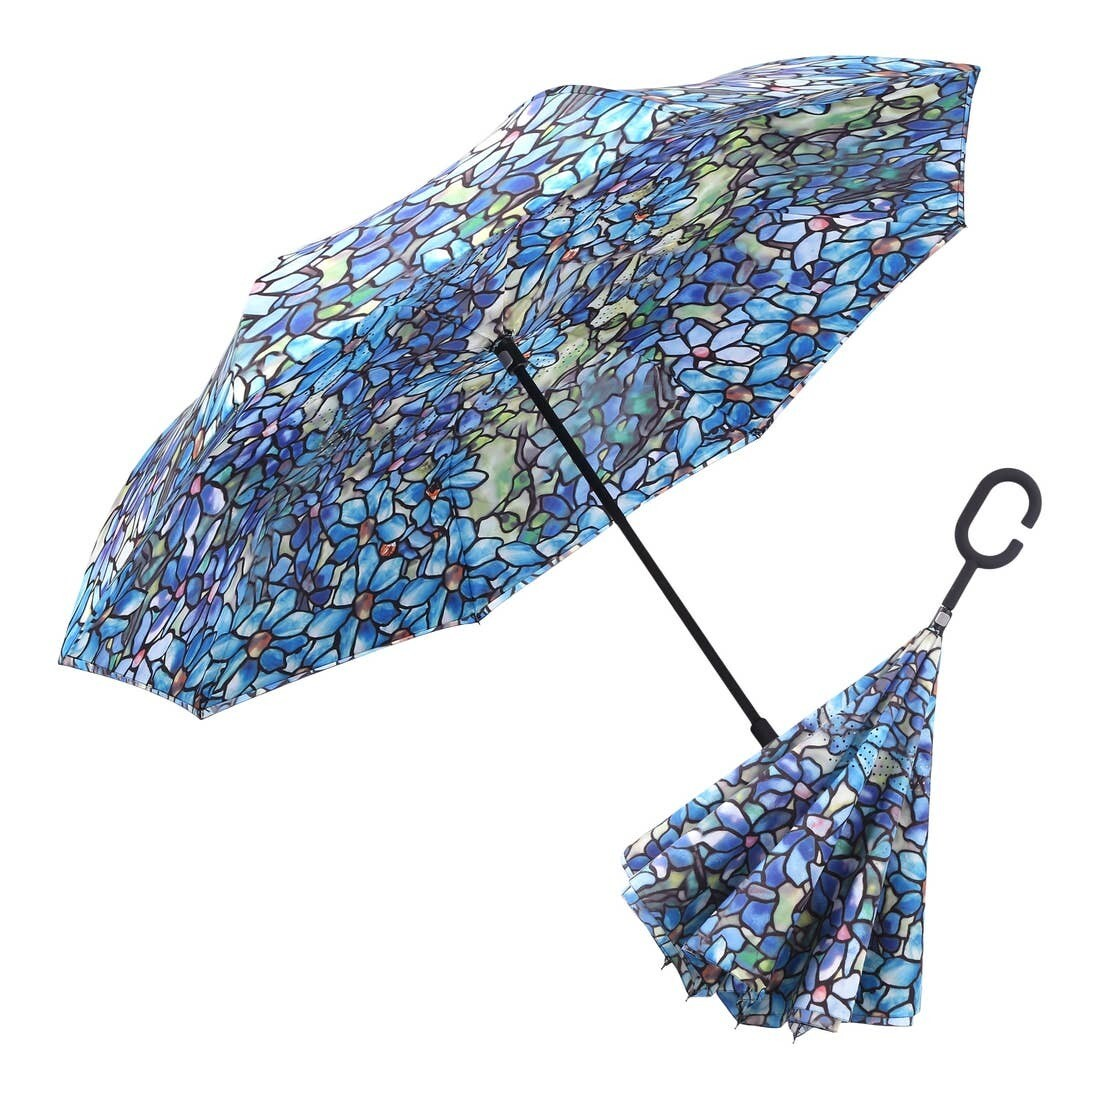 Inverted Umbrella that Covers You!